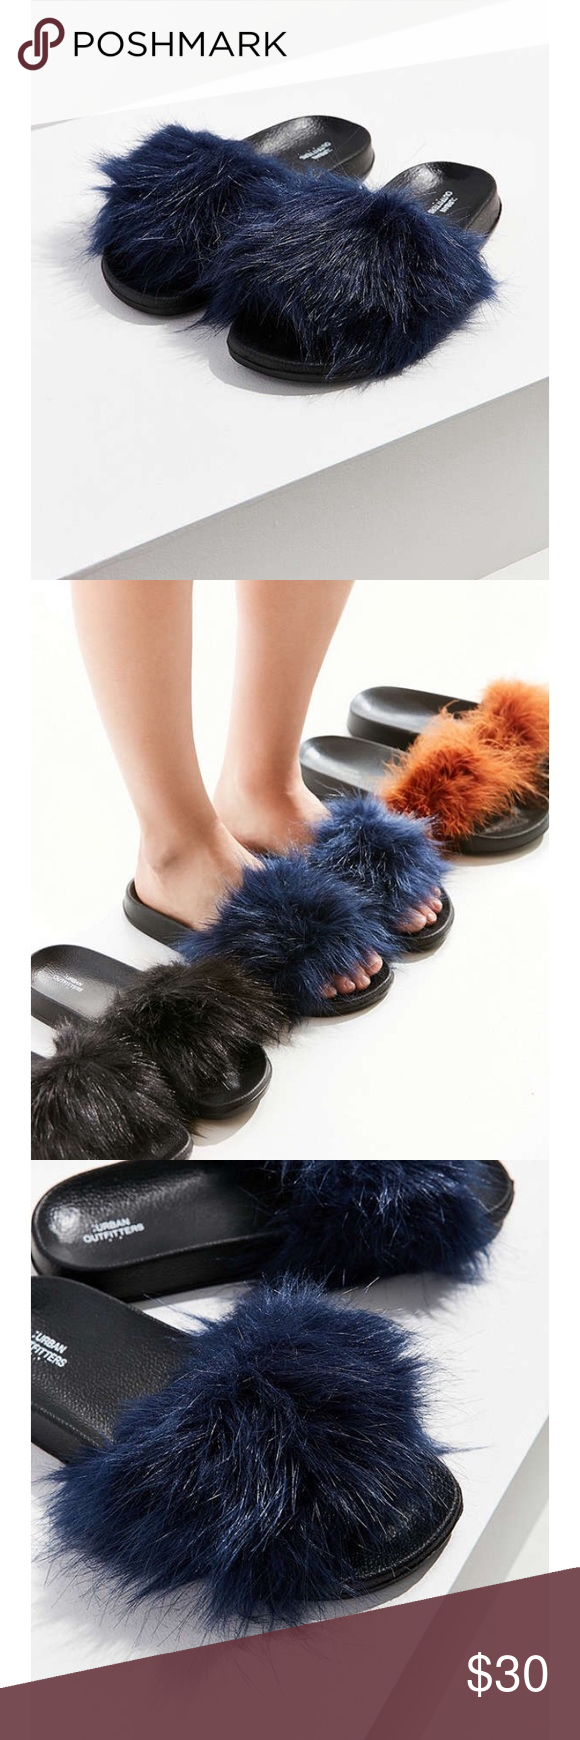 e1bca3217106 Urban Outfitters Furry Navy Blue Sliders Brand new with Tags. Cute and soft  furry Sliders. Urban Outfitters Shoes Slippers